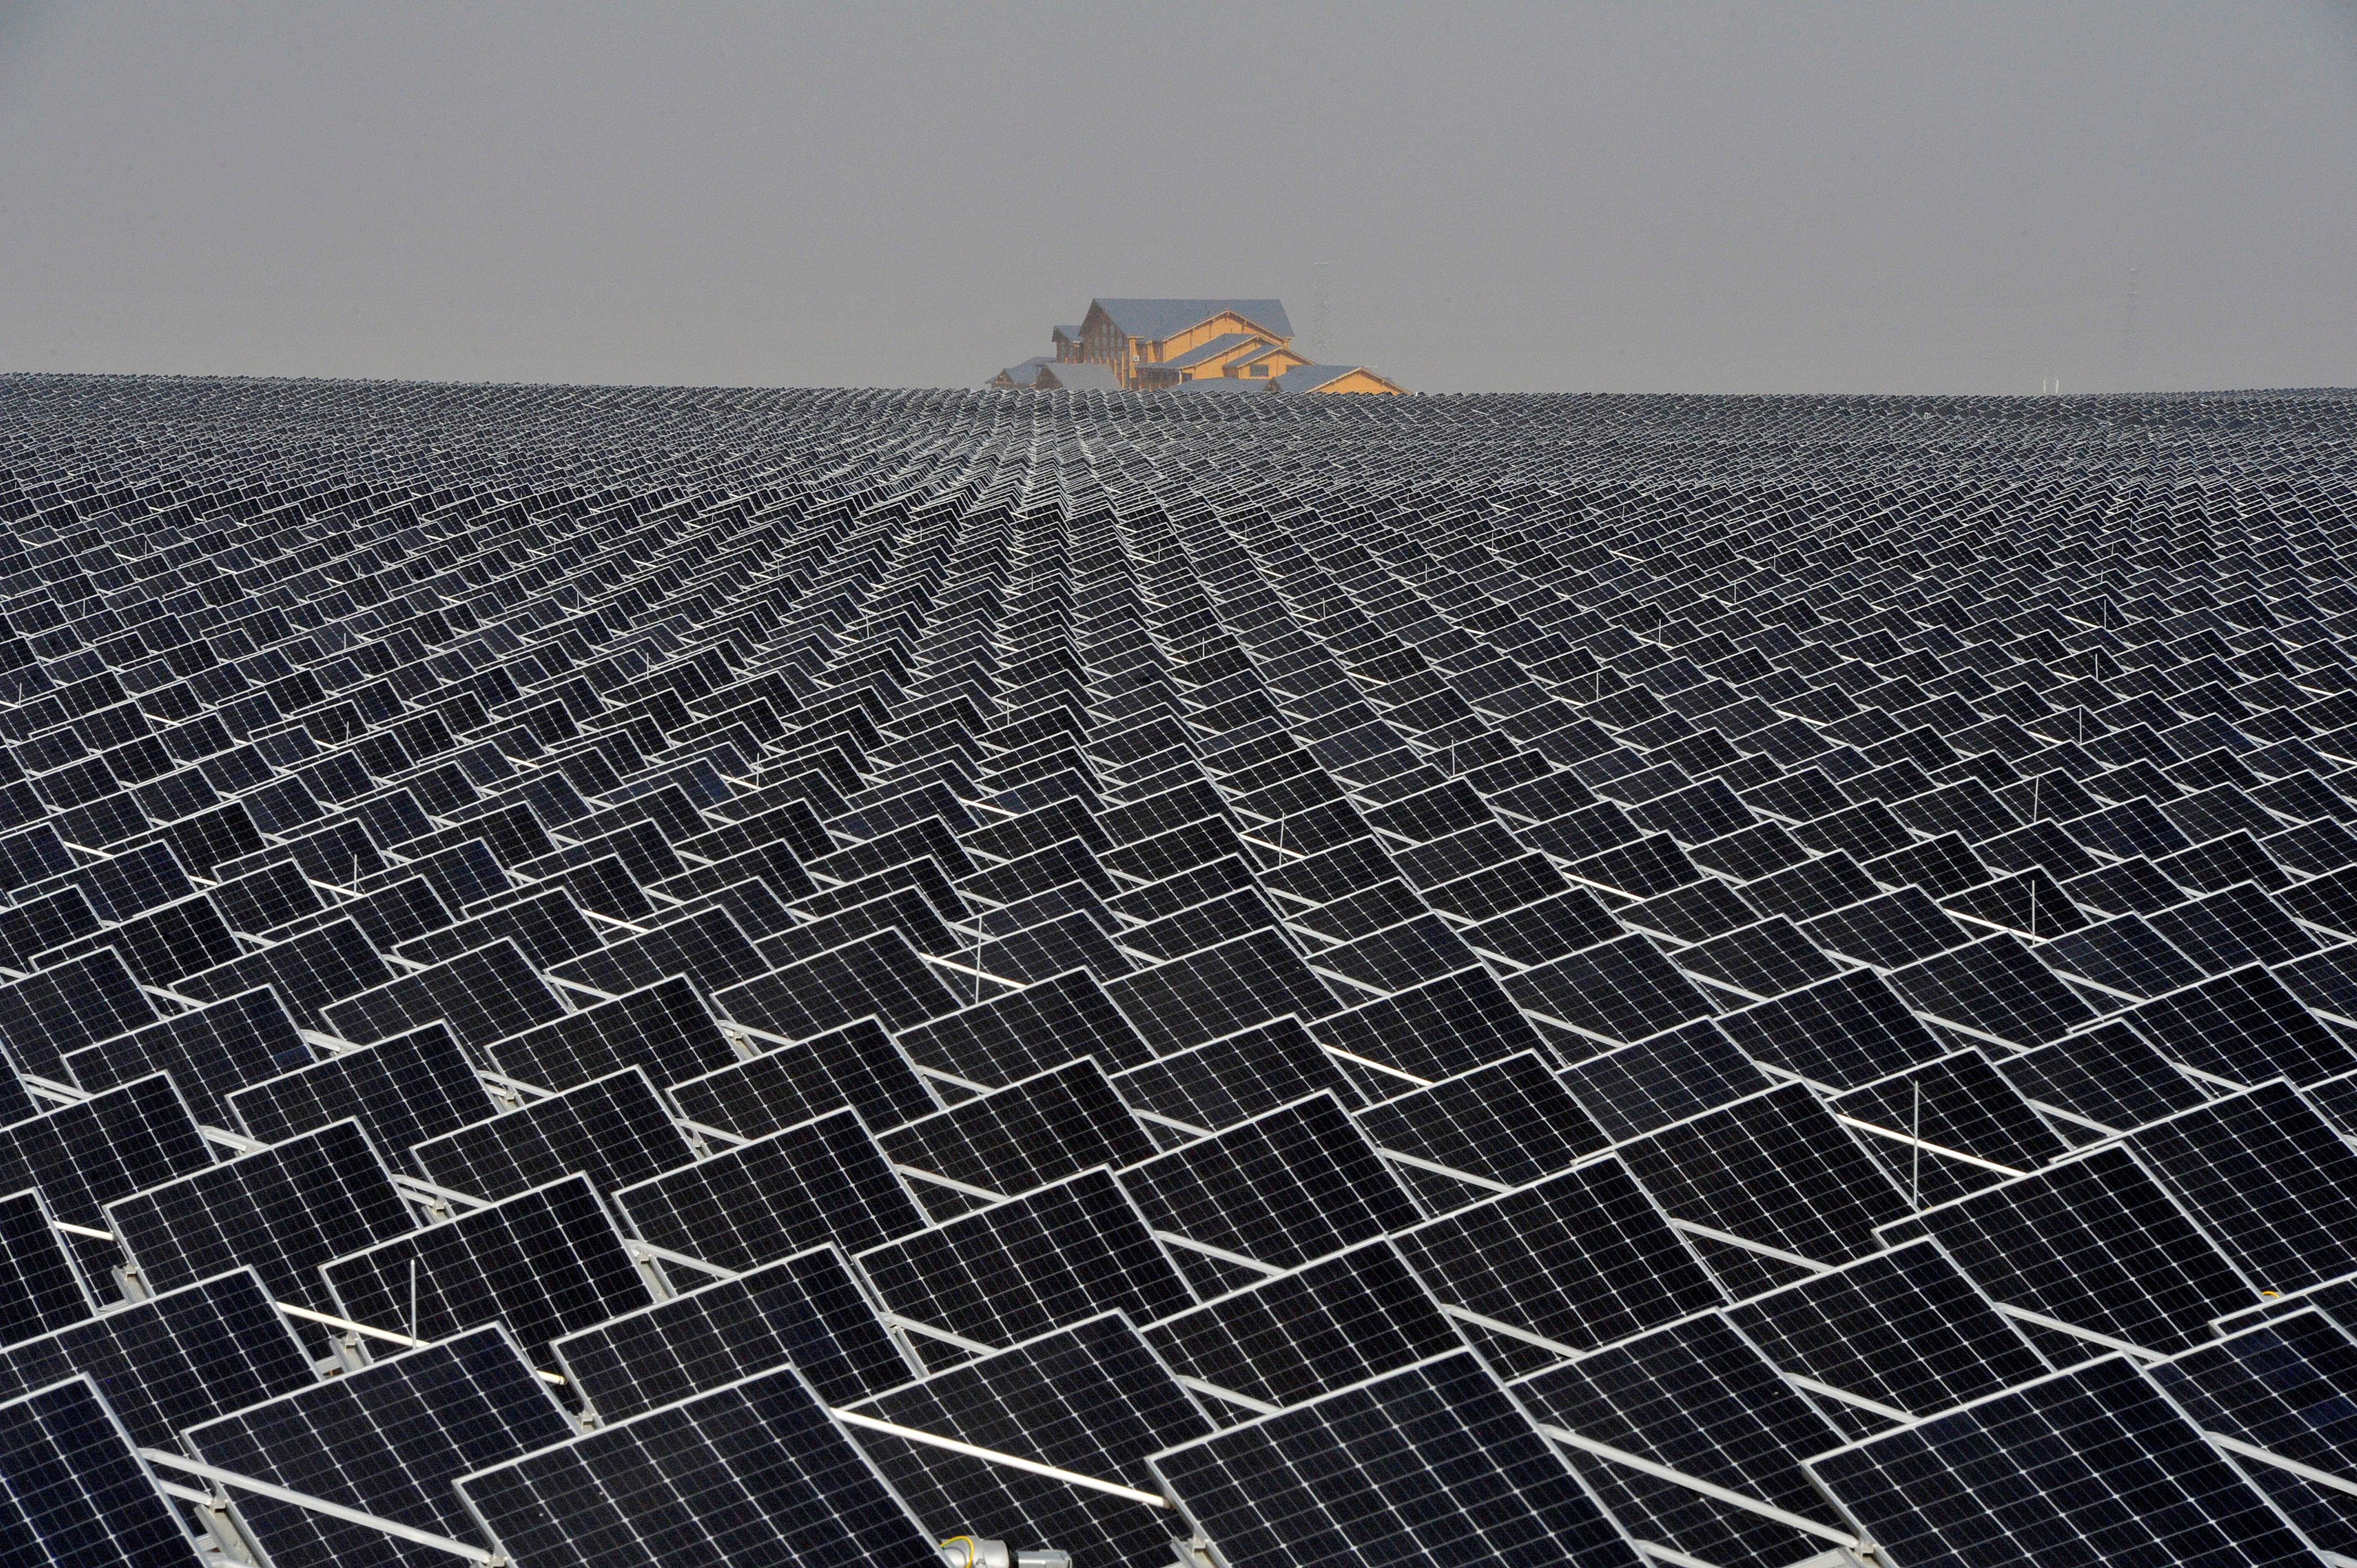 China's lead in the global solar race - at a glance | World Economic Forum